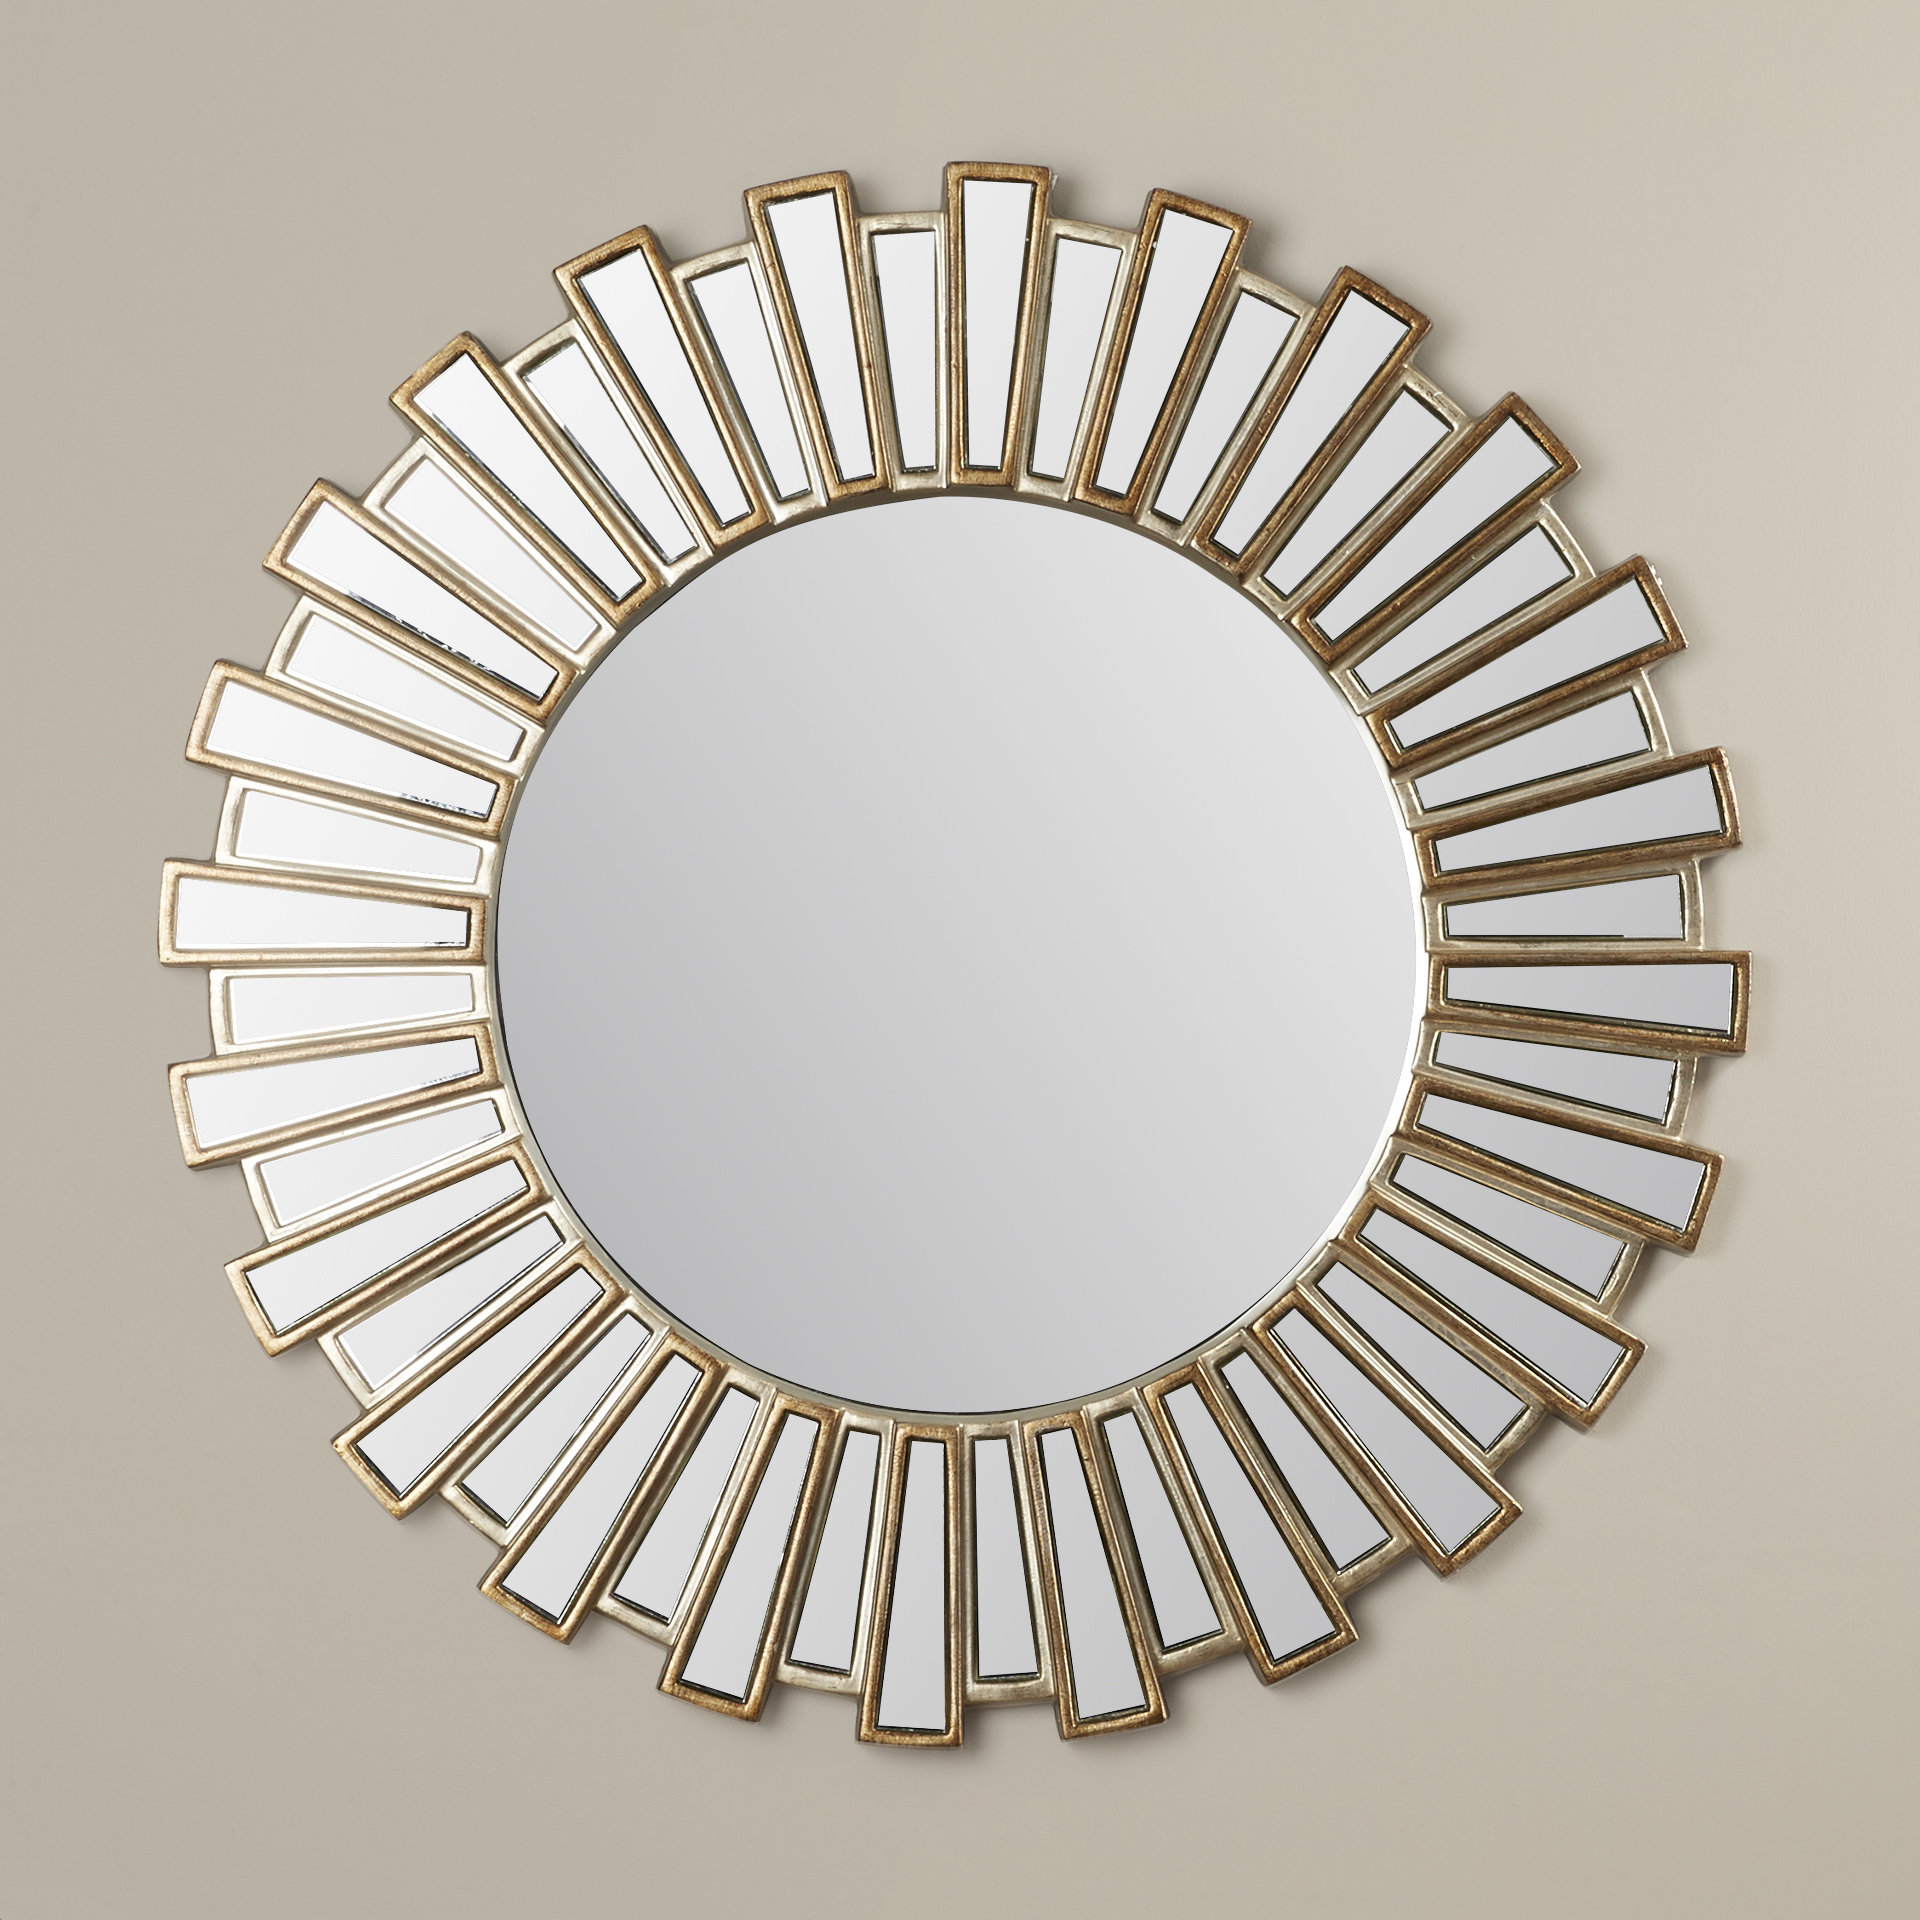 Sunburst Wall Mirrors You'll Love In 2019 | Wayfair For Orion Starburst Wall Mirrors (Image 15 of 20)